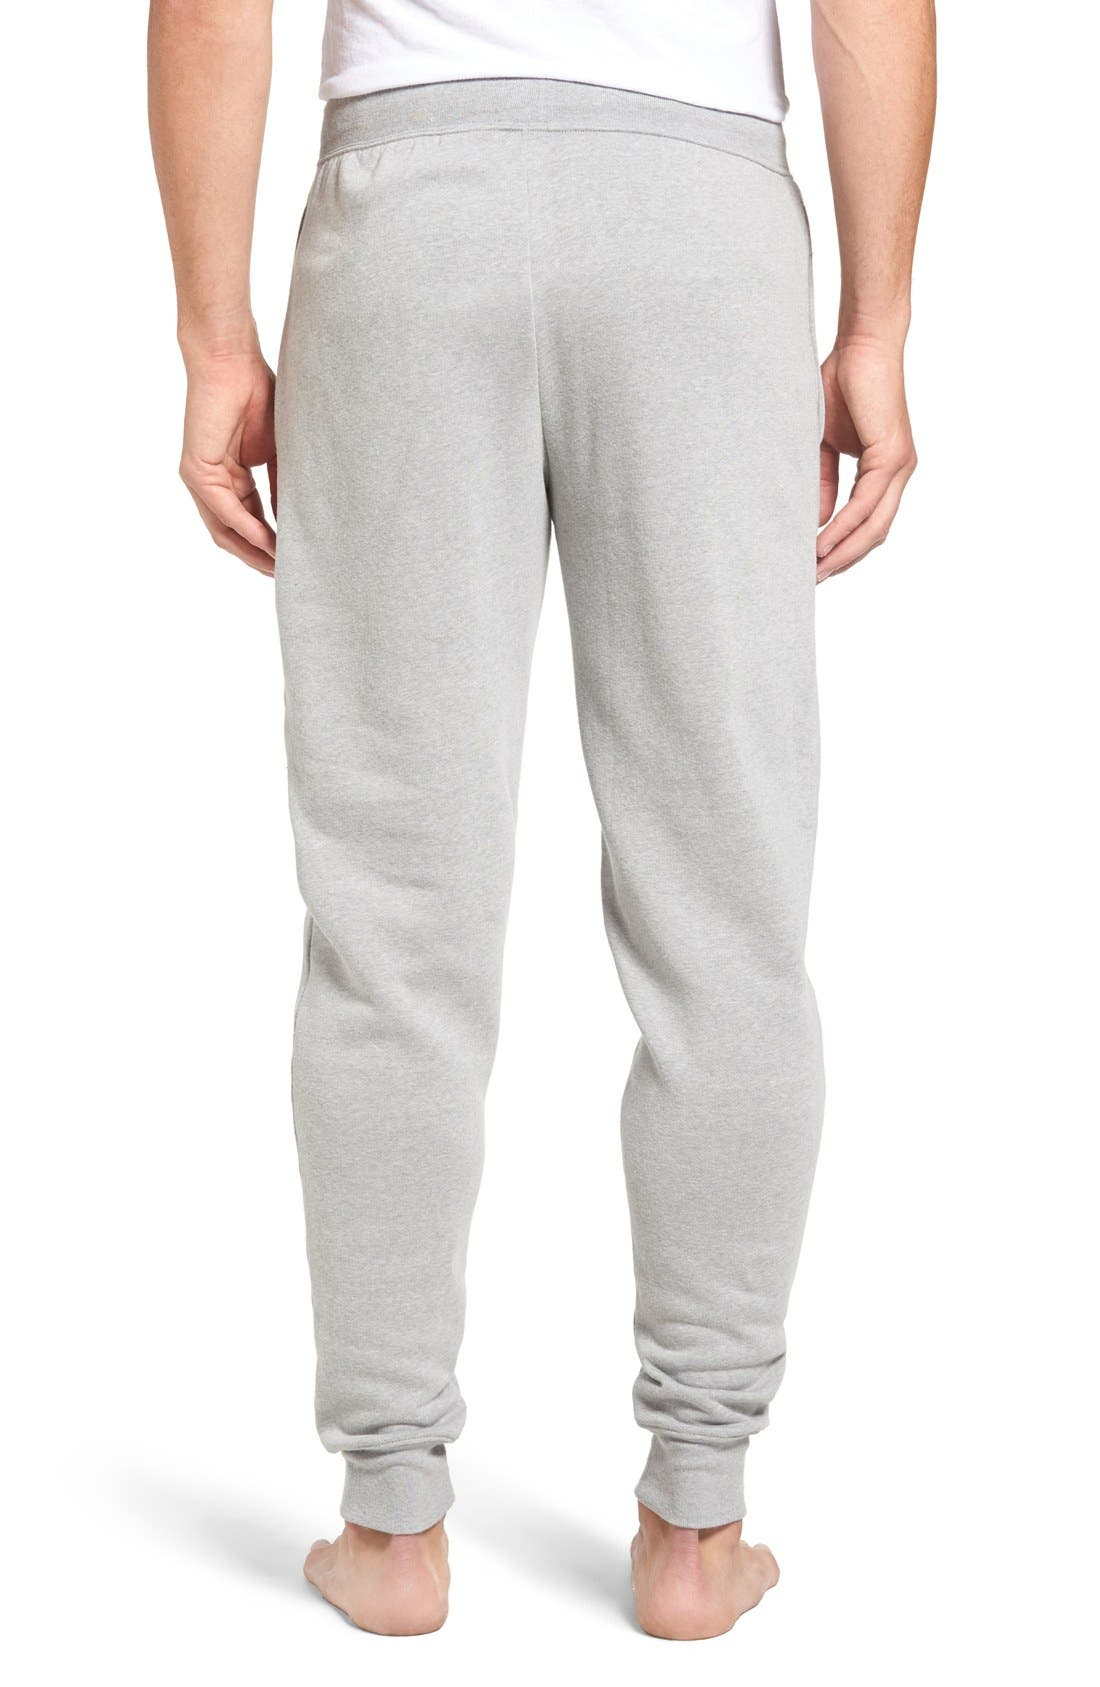 Brushed Jersey Cotton Blend Jogger Pants,                             Alternate thumbnail 8, color,                             ANDOVER HEATHER GREY